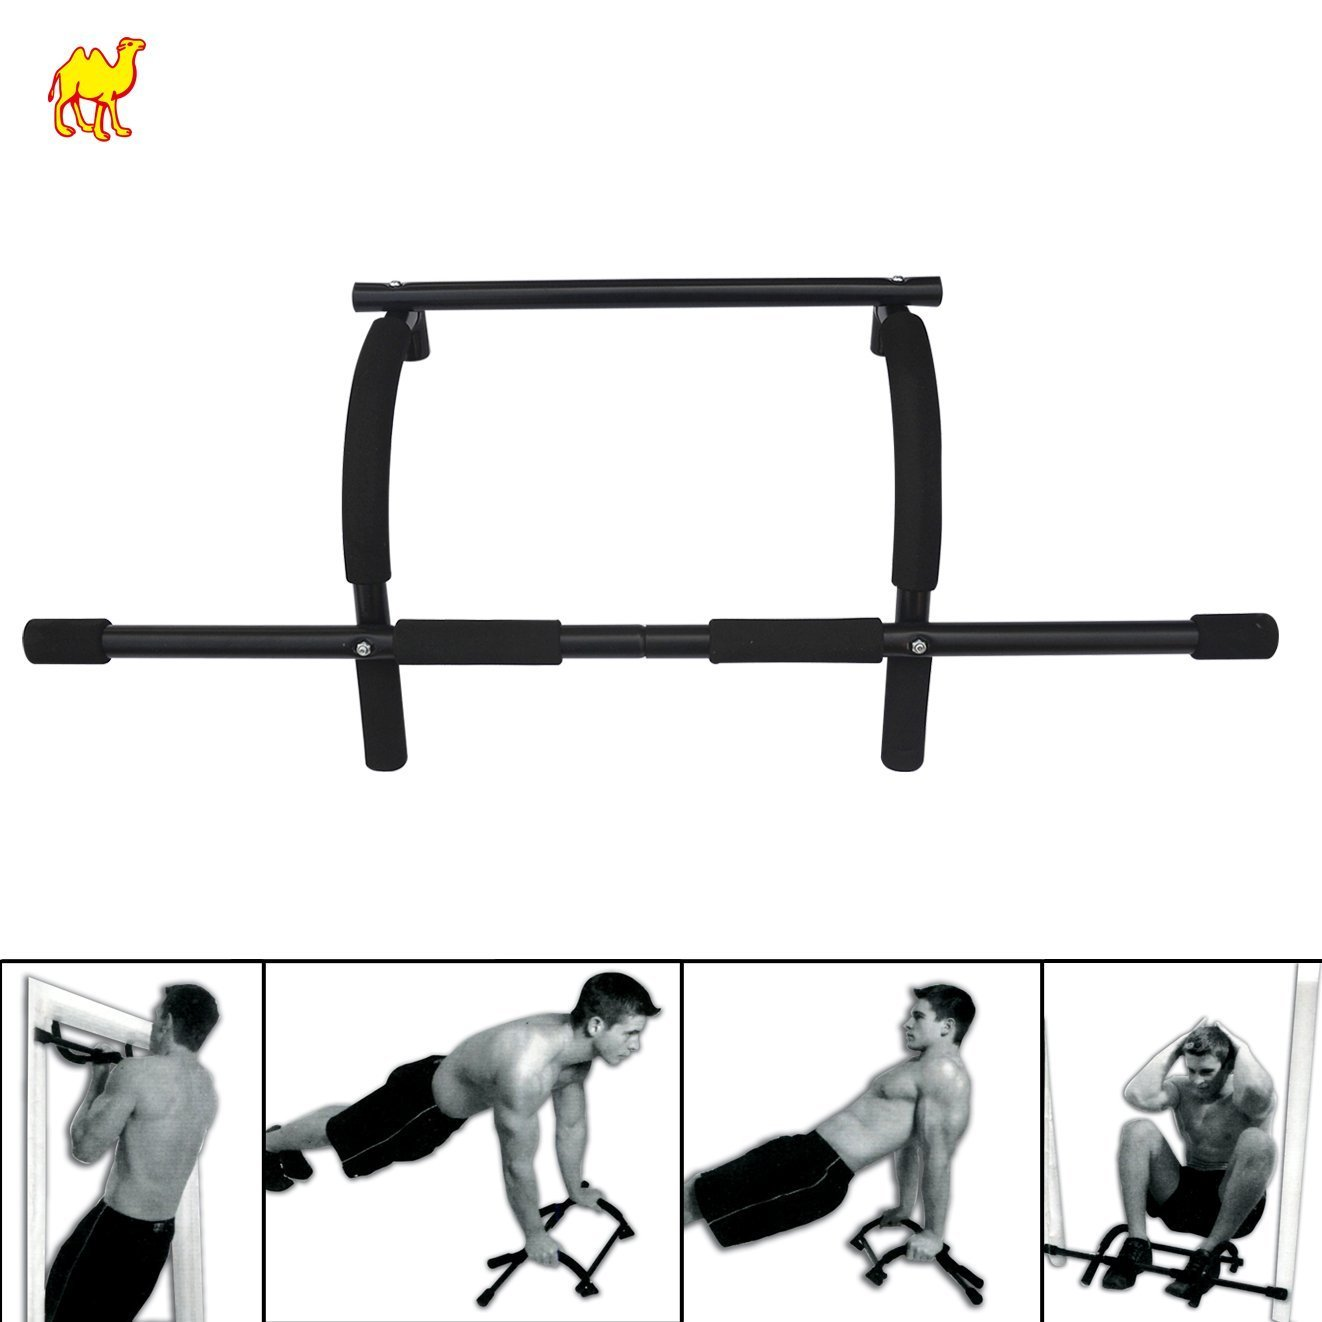 BenefitUSA Heavy-Duty Easy Xtreme Gym Doorway Push-Up/Pull-Up Bar